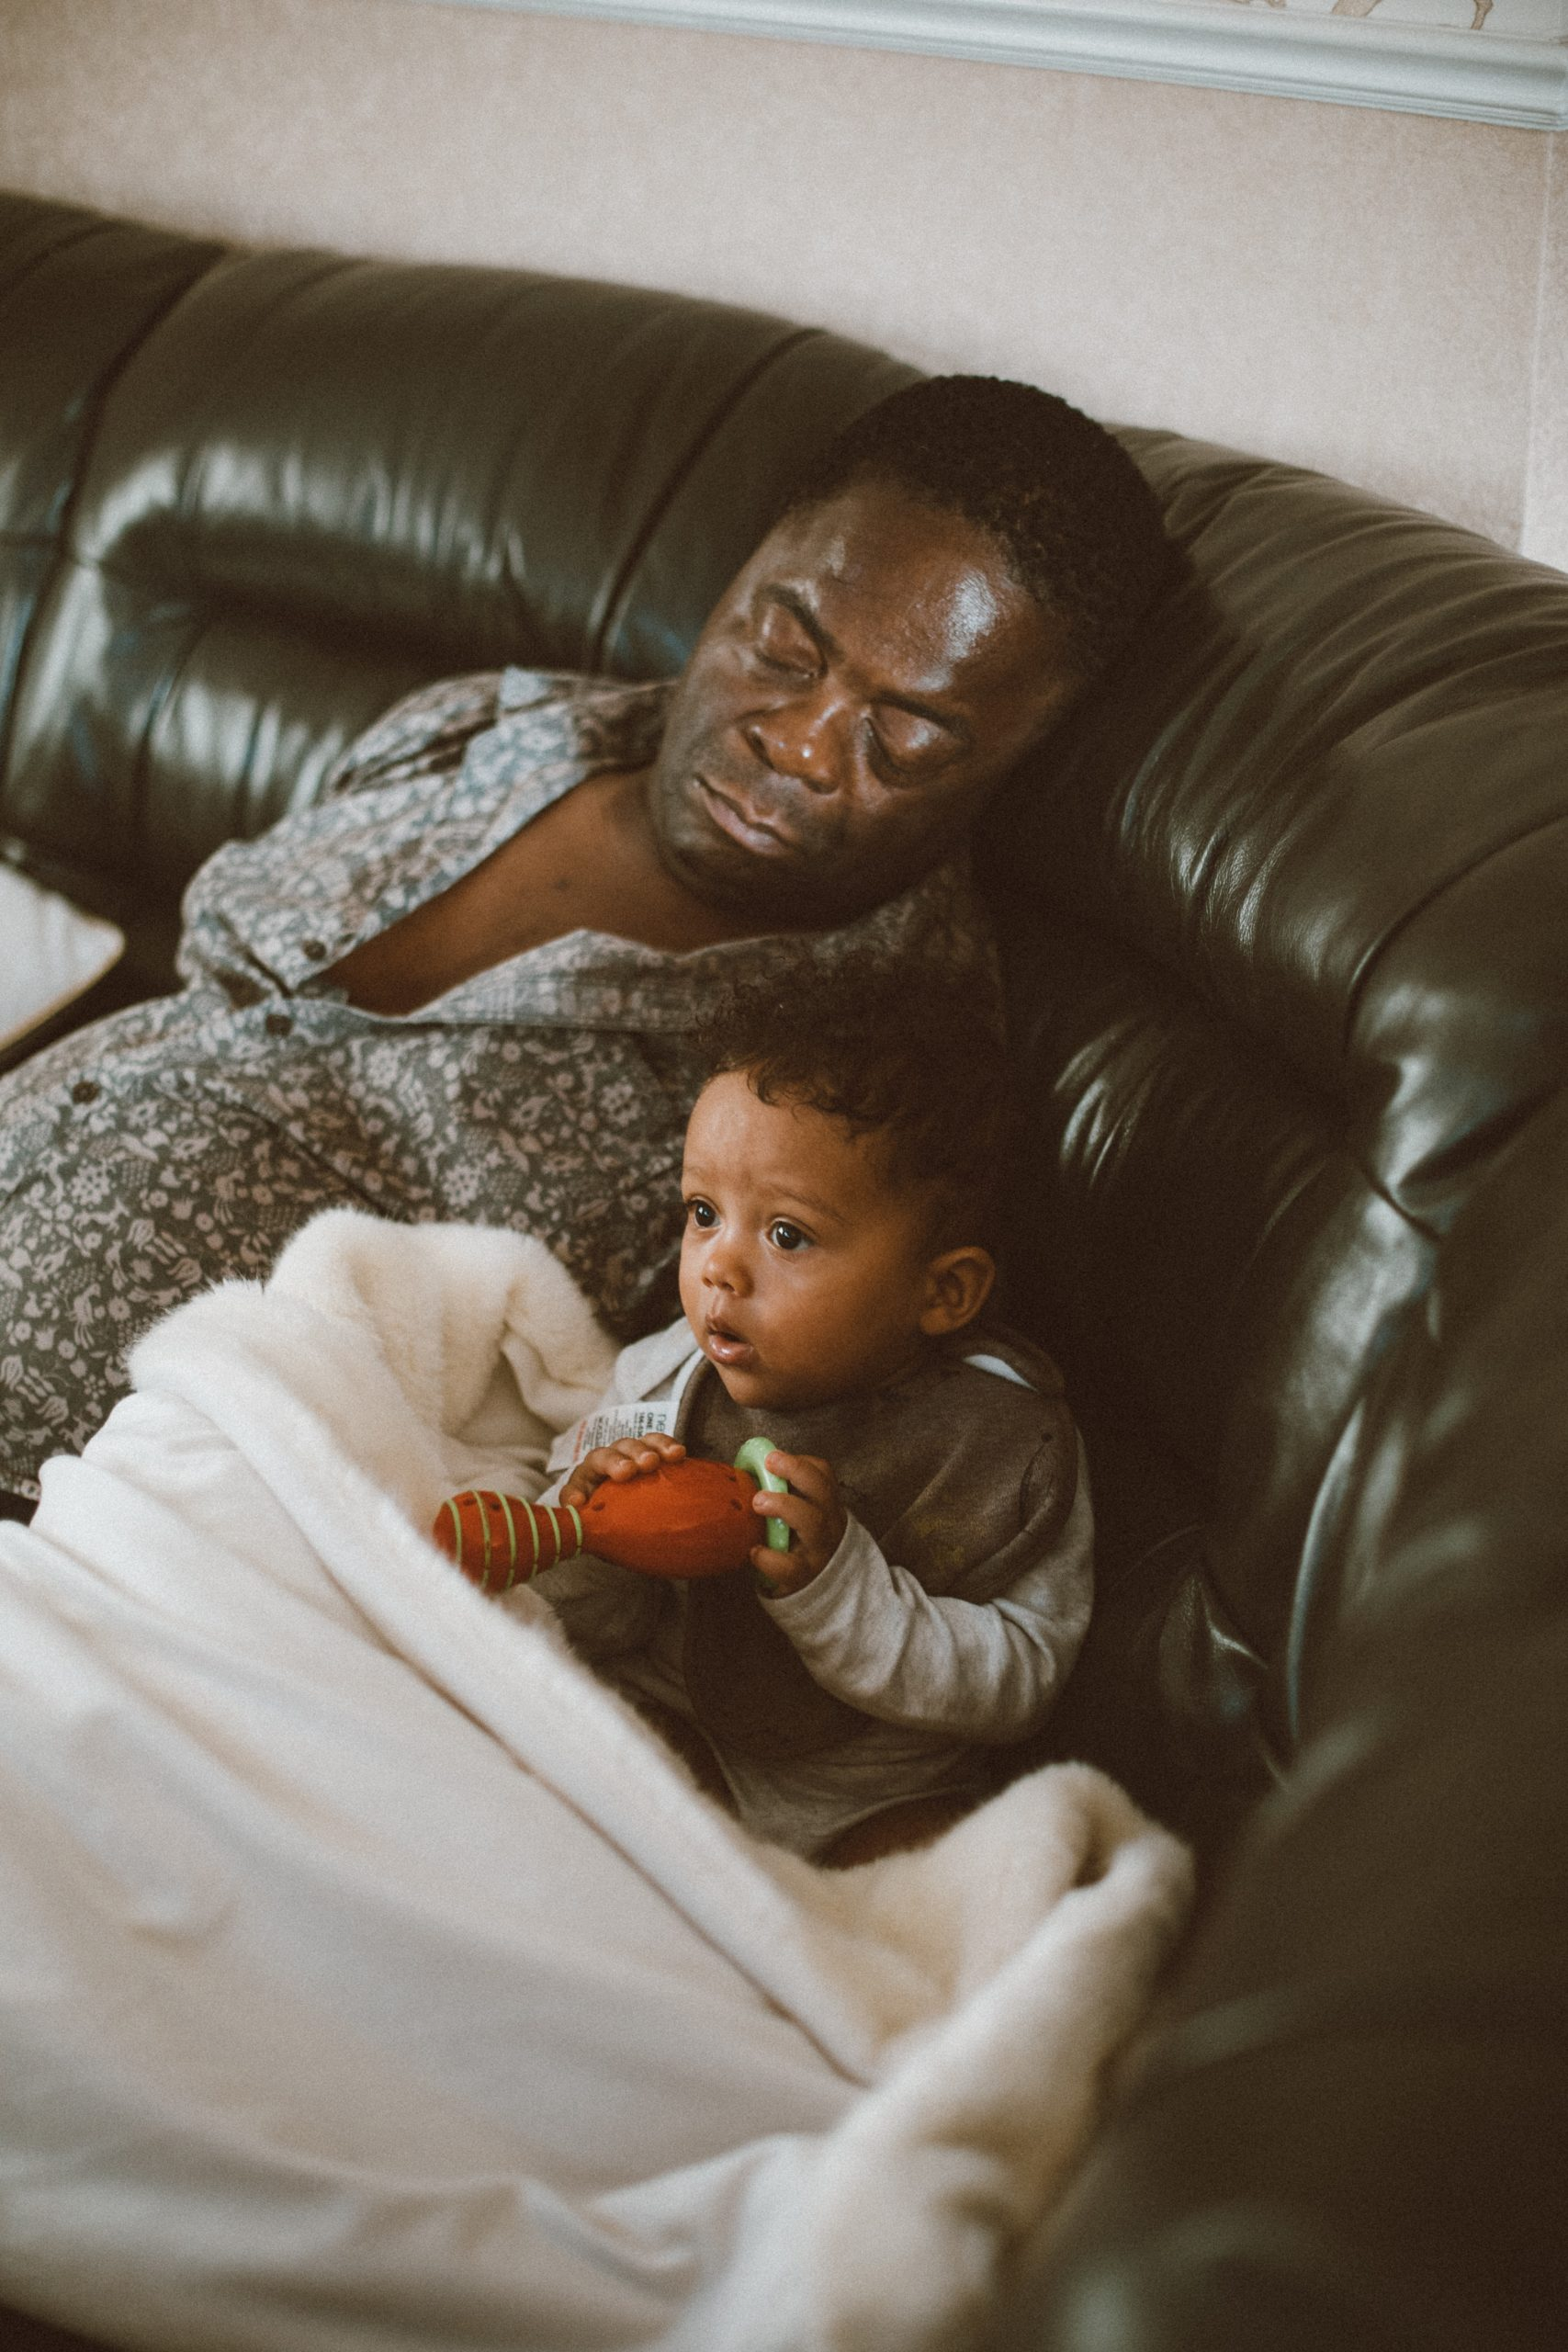 Young toddler sitting on sofa next to his sleeping grandfather